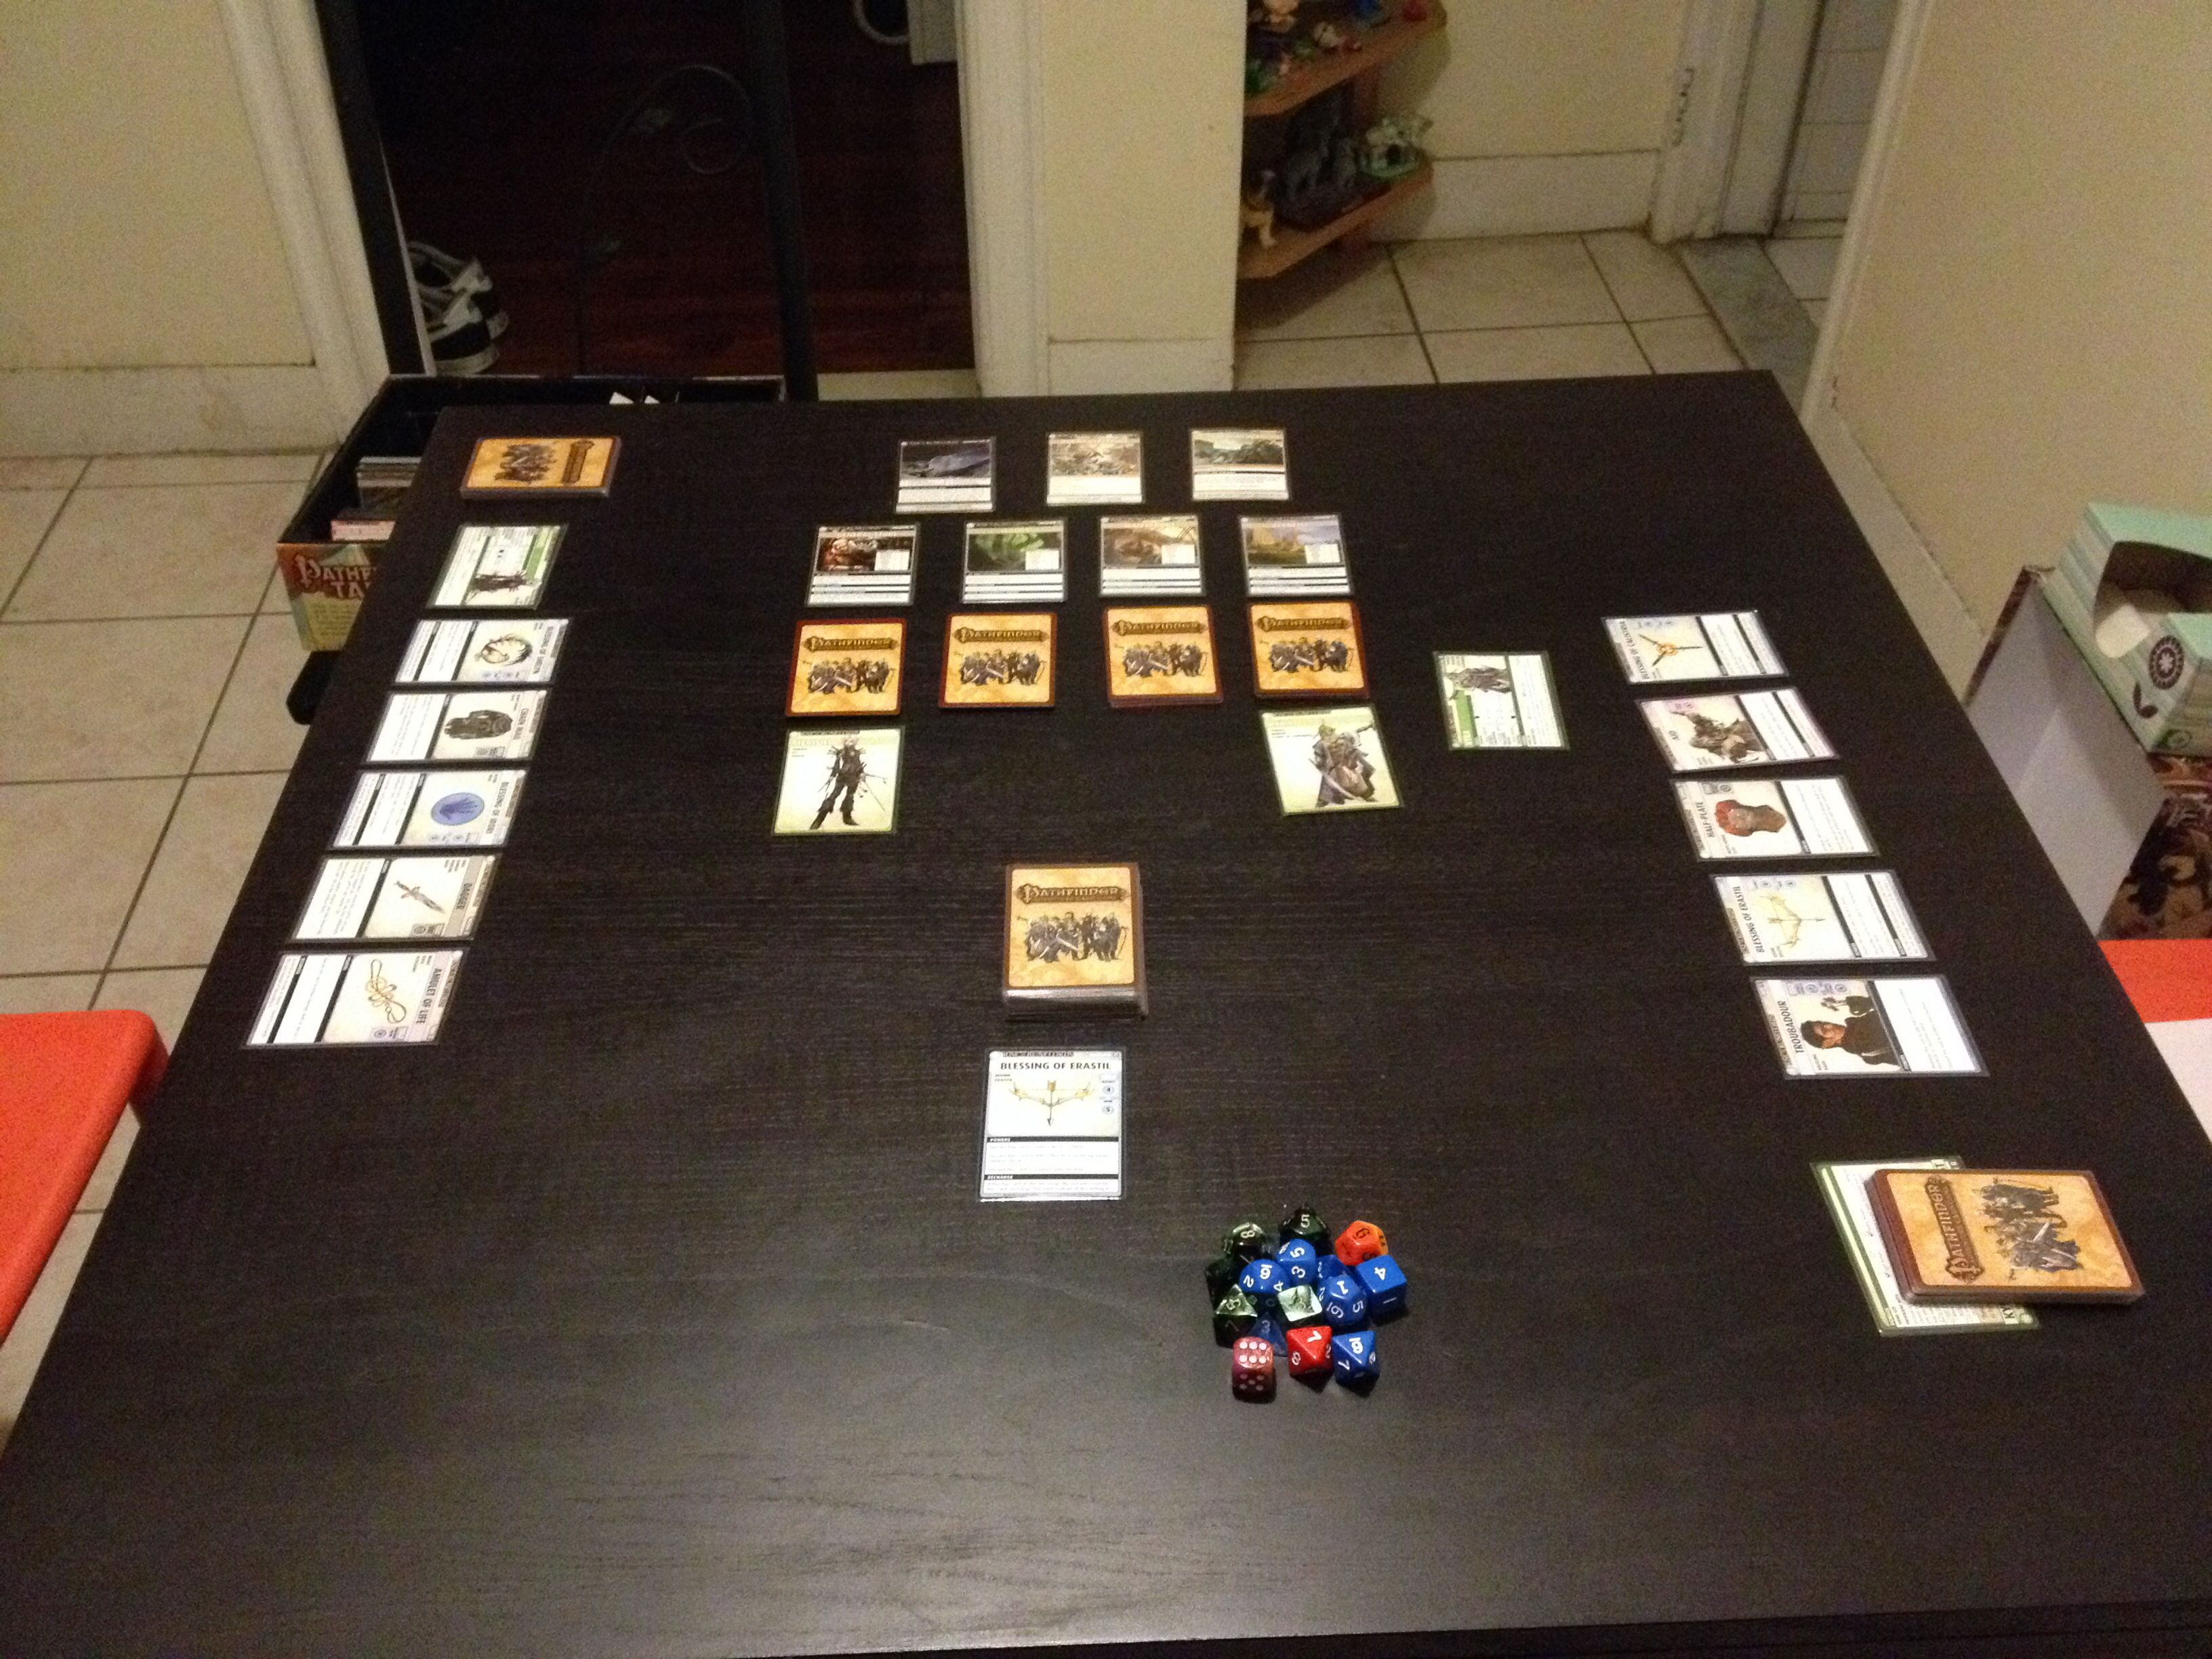 Pathfinder the Adventure Card Game. We were playing the